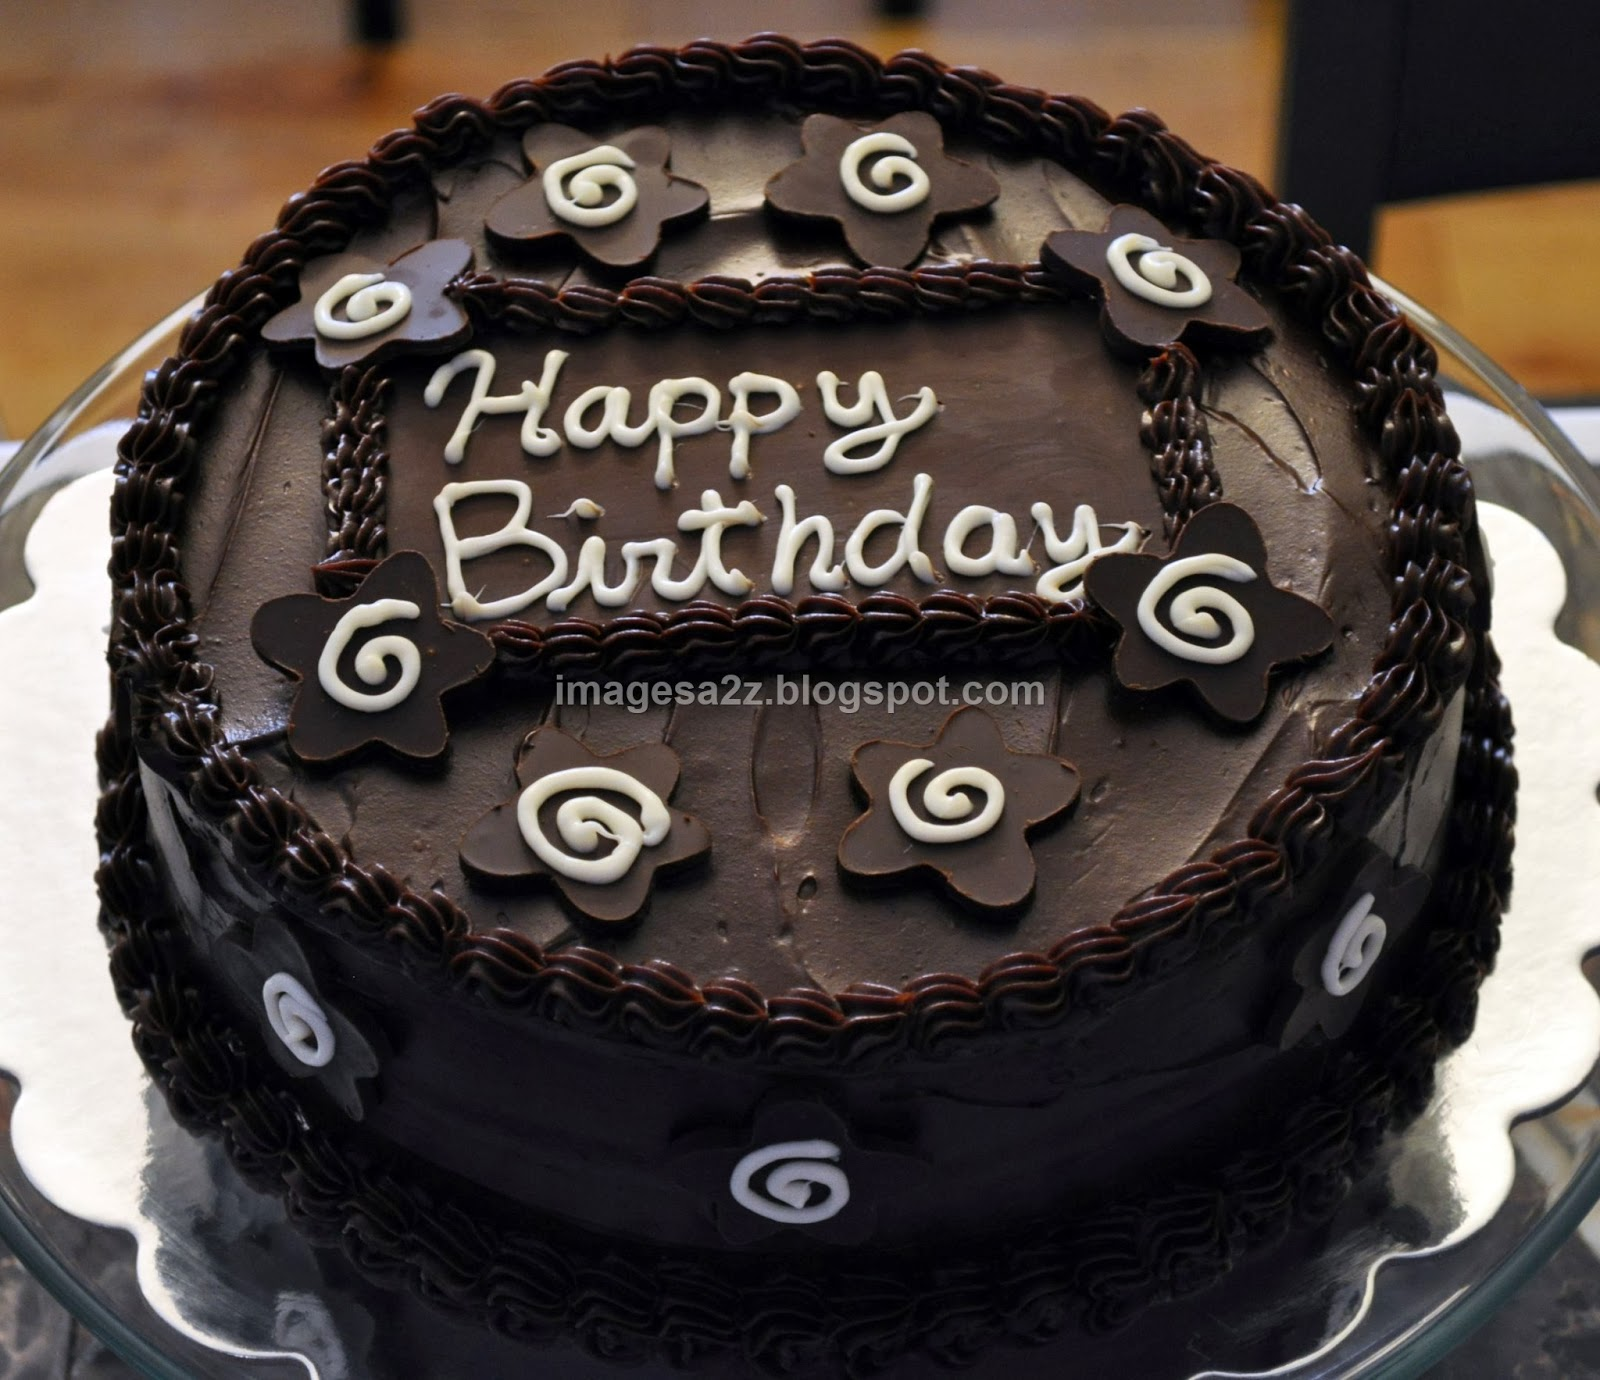 Pics Of Birthday Cakes For A Friend : attractive birthday wishes for friends cake birthday ...